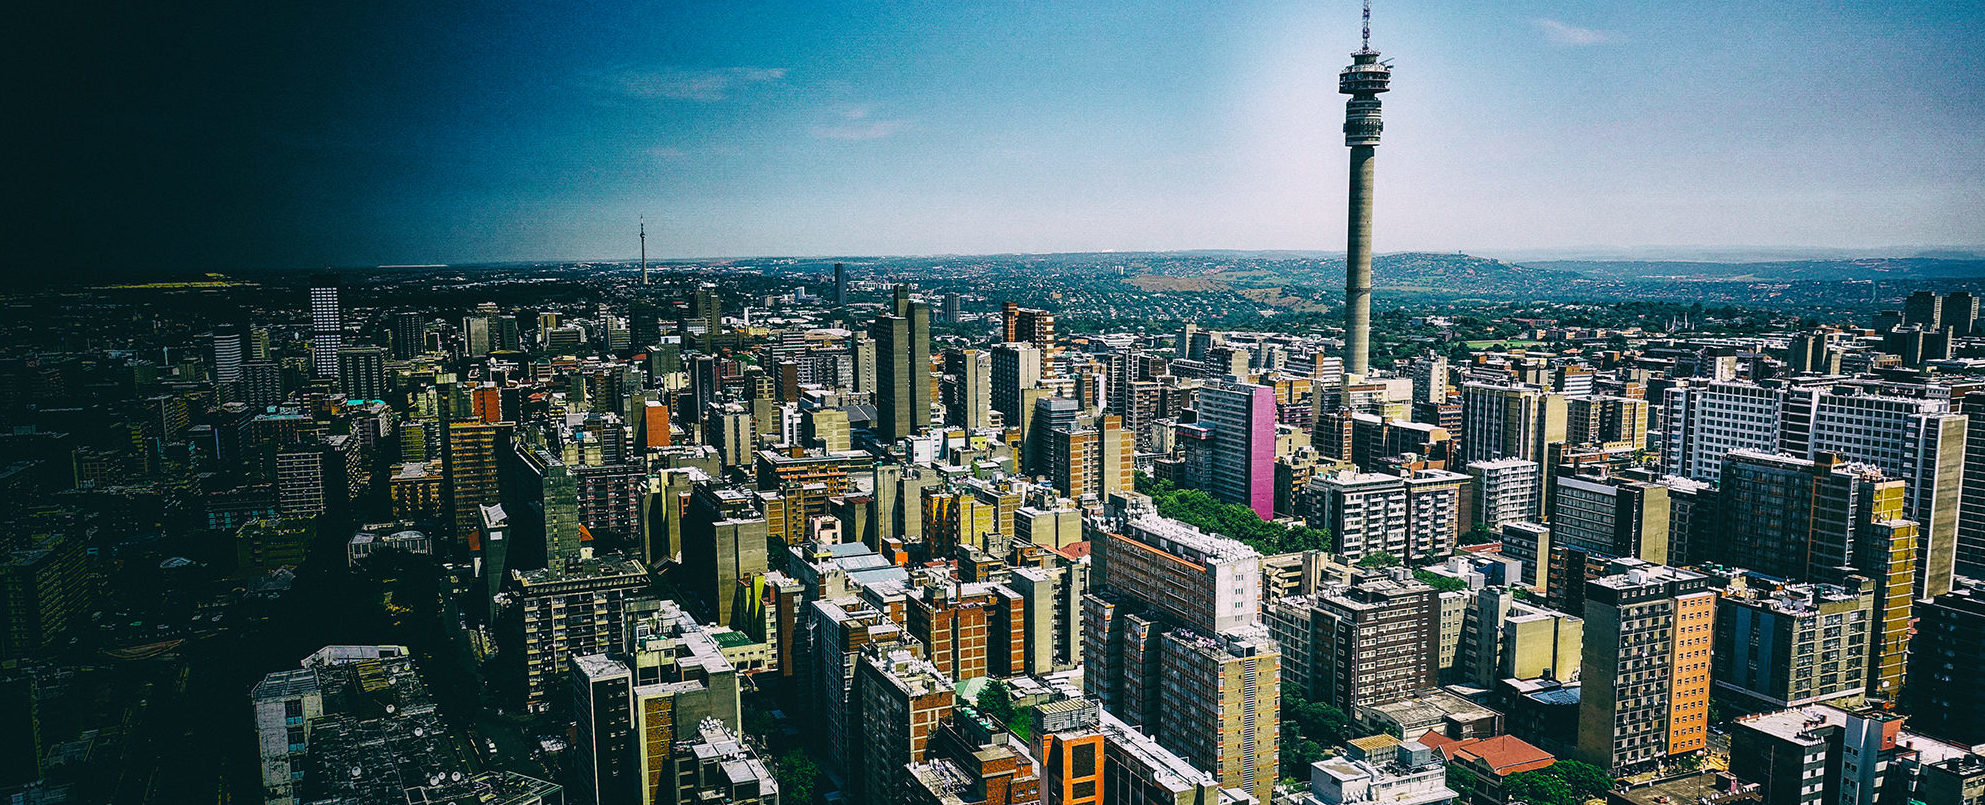 Gauteng: The powerhouse province that humbled the ANC and DA